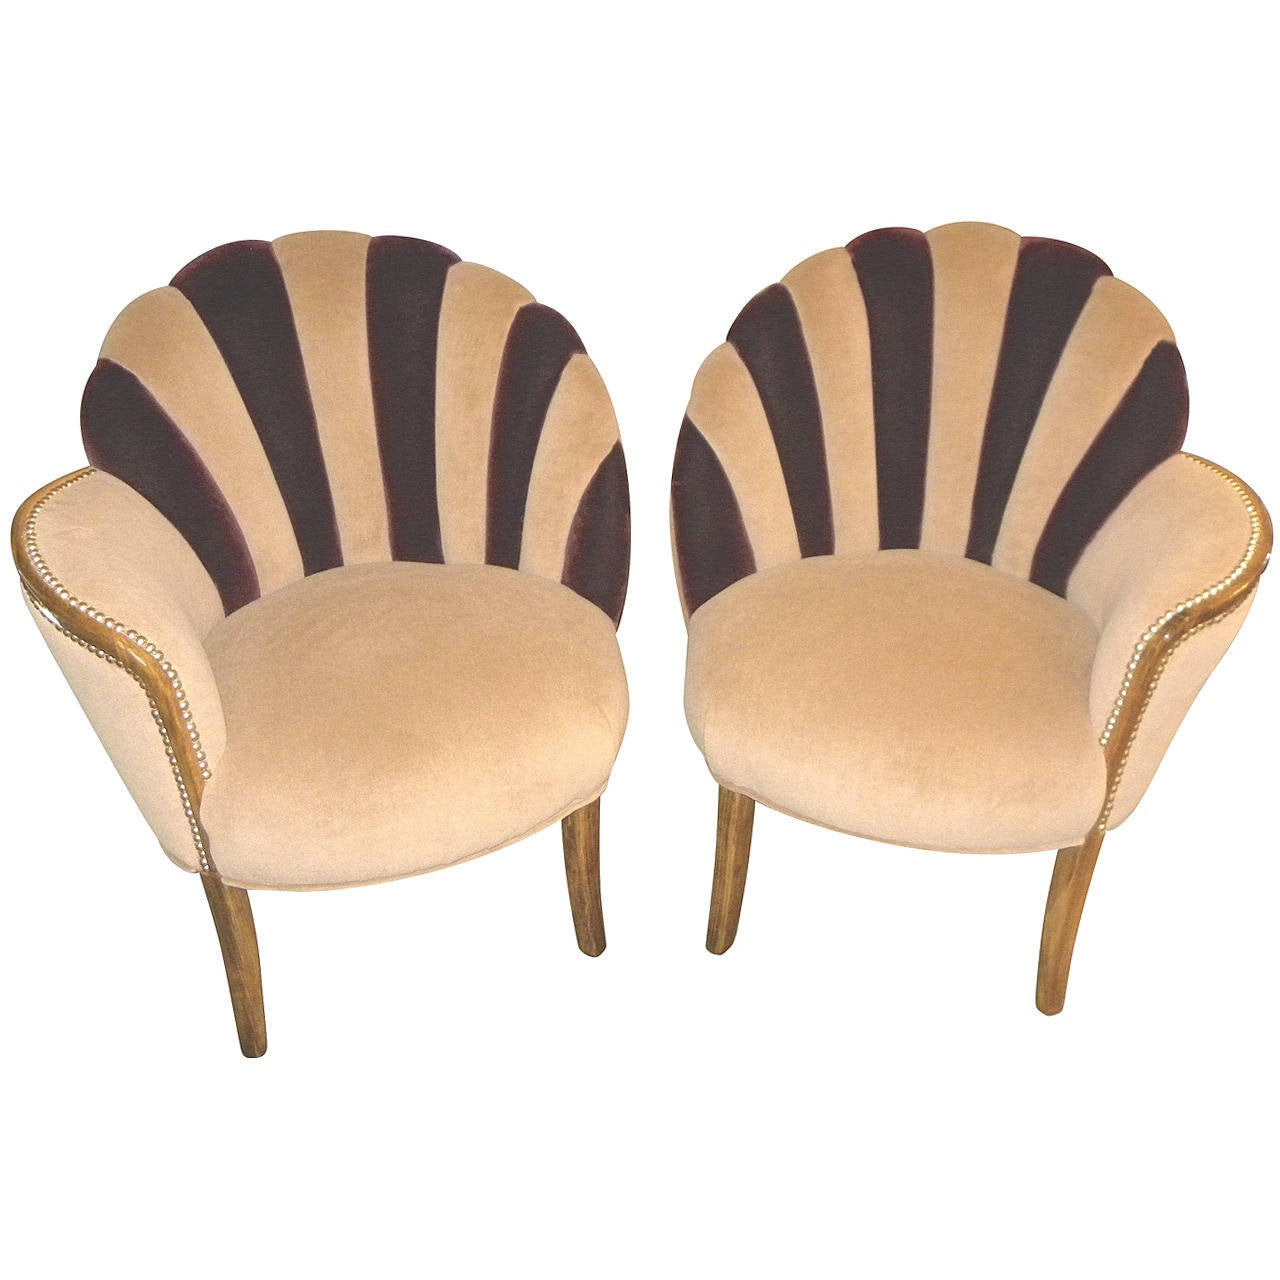 art deco kitchen chairs chair cover hire in leeds high style fan backed side for sale at 1stdibs